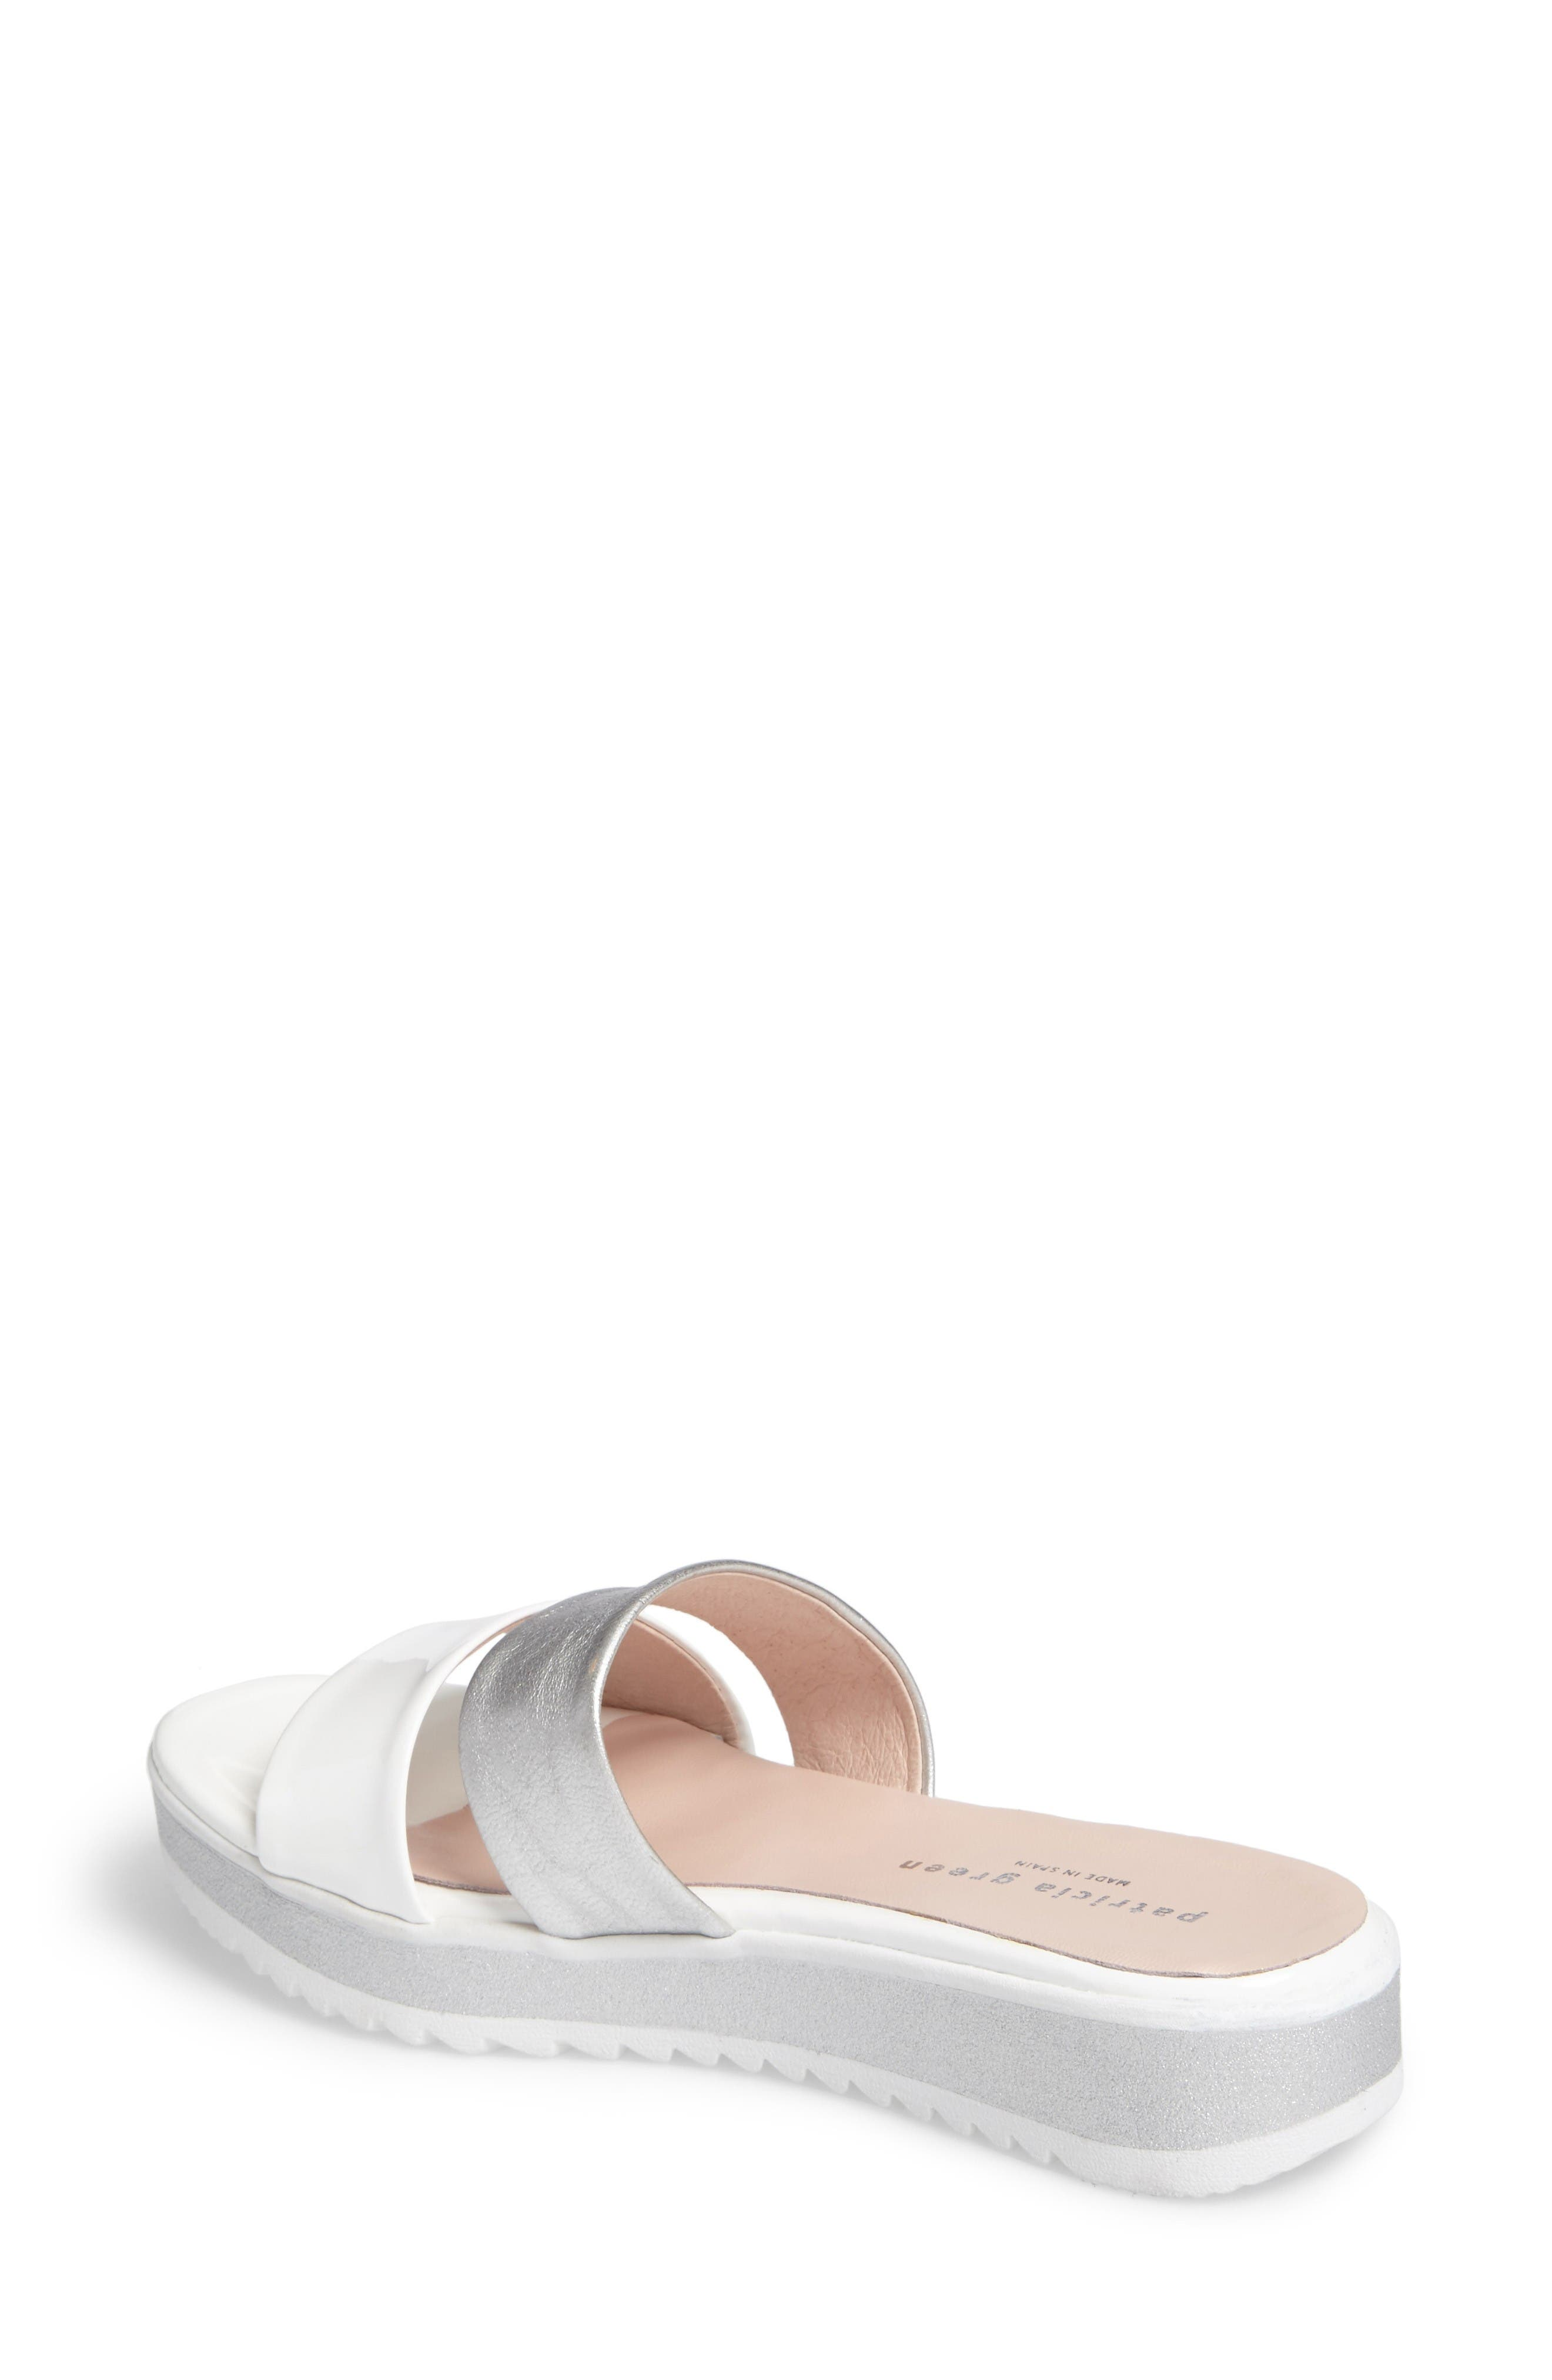 Alternate Image 2  - patricia green Bailey Slide Sandal (Women)